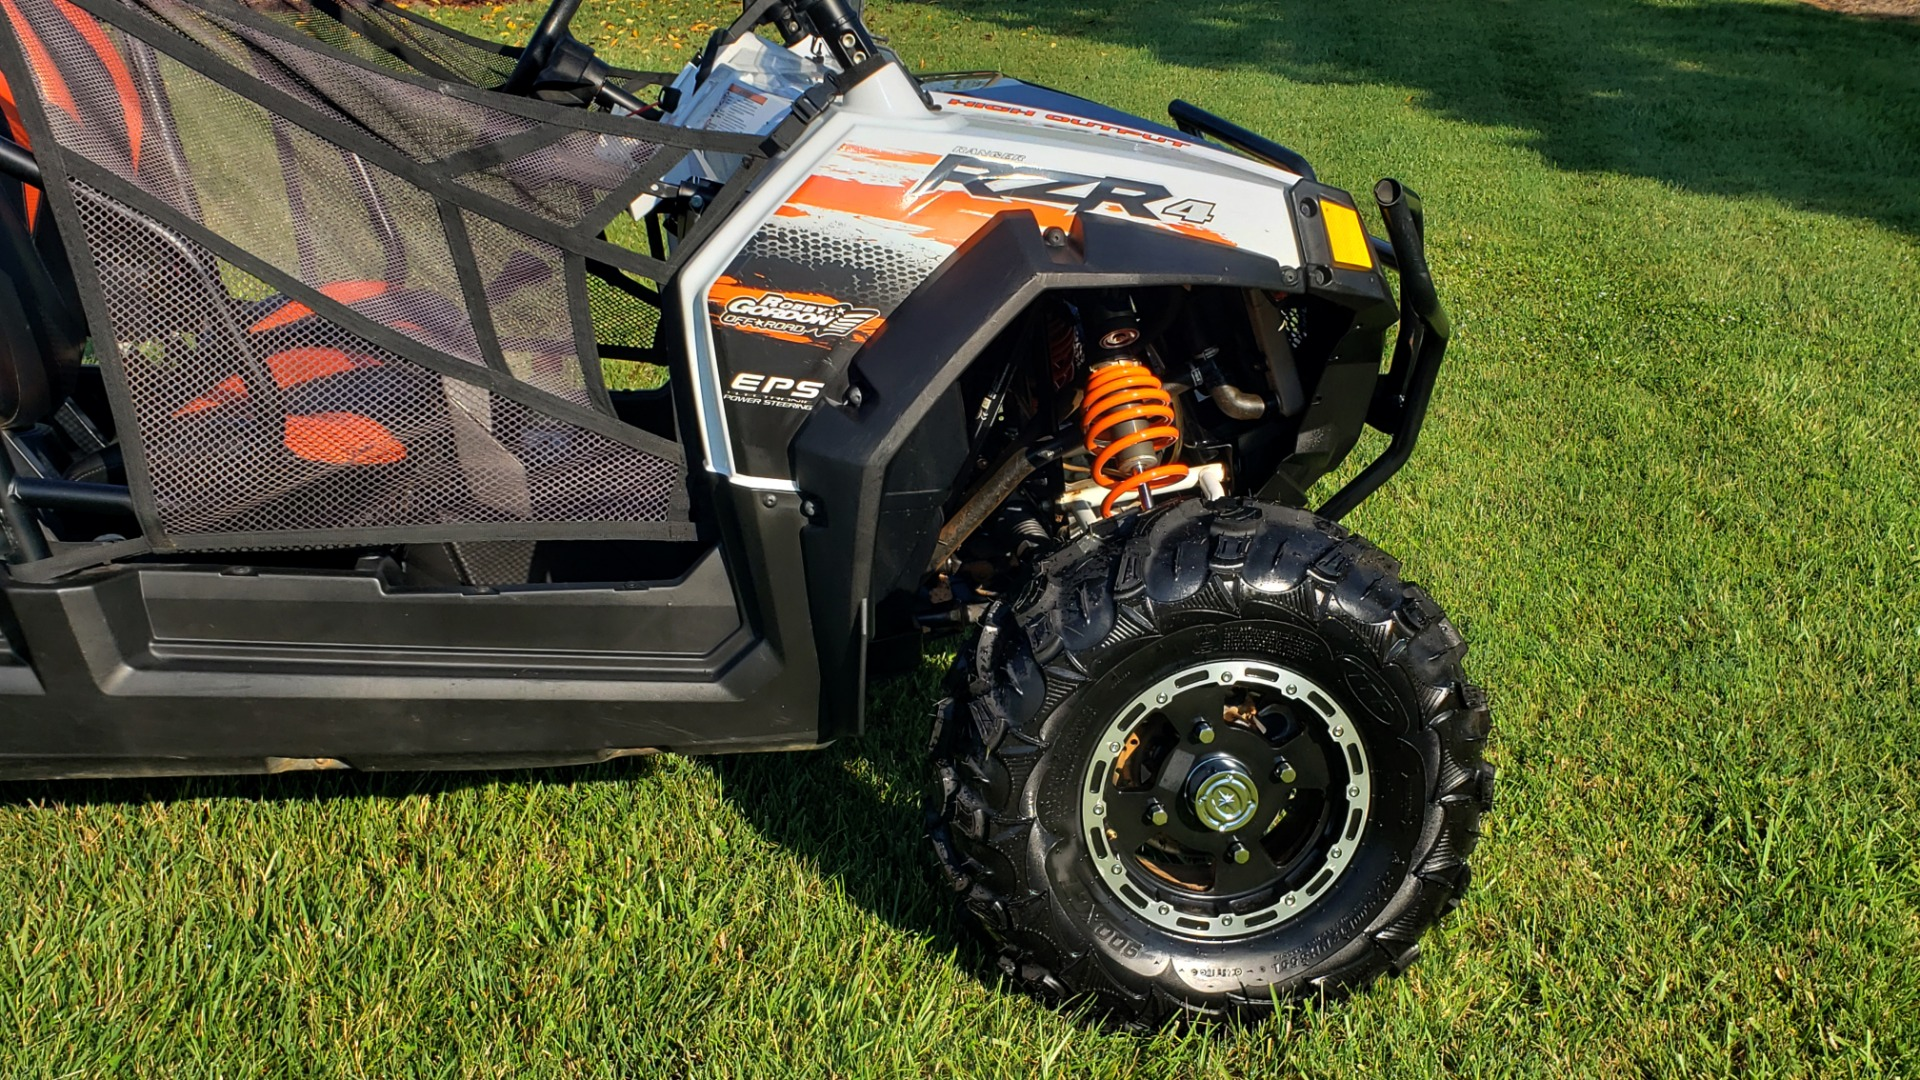 Used 2012 POLARIS RANGER RZR4 / HO 800 EFI / IPHONE CONNECT / SPEAKERS / NEW TIRES for sale Sold at Formula Imports in Charlotte NC 28227 11